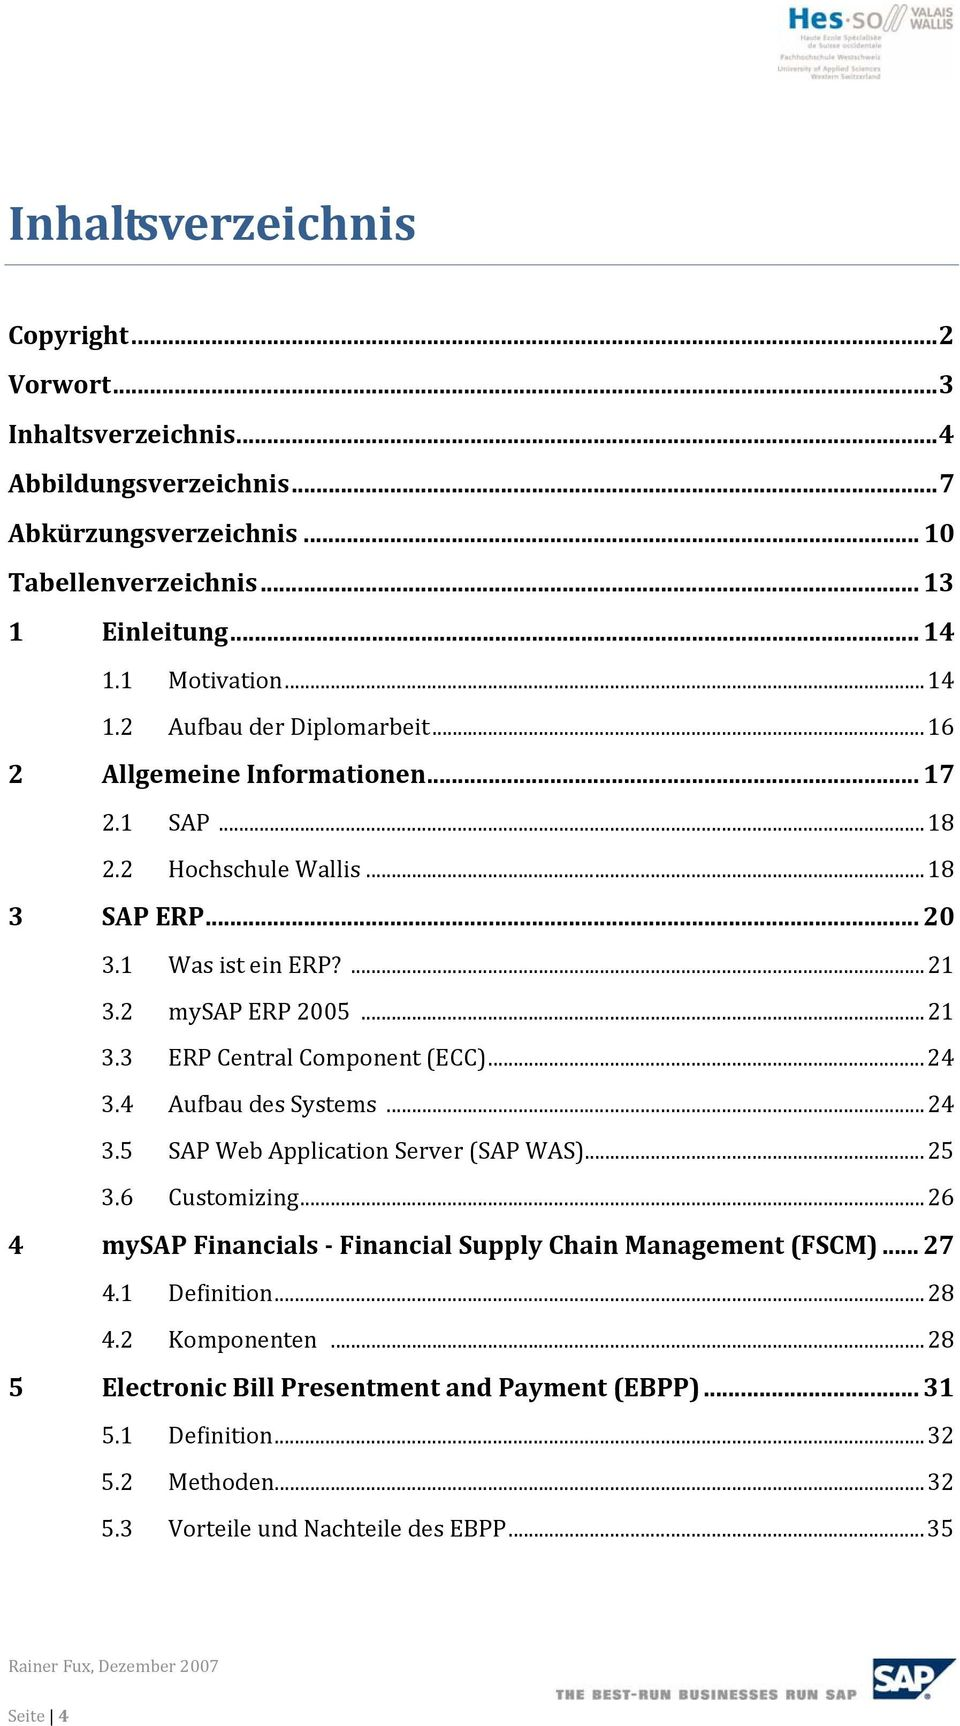 ..24 3.4 Aufbau des Systems...24 3.5 SAP Web Application Server (SAP WAS)...25 3.6 Customizing...26 4 mysap Financials Financial Supply Chain Management (FSCM)... 27 4.1 Definition.